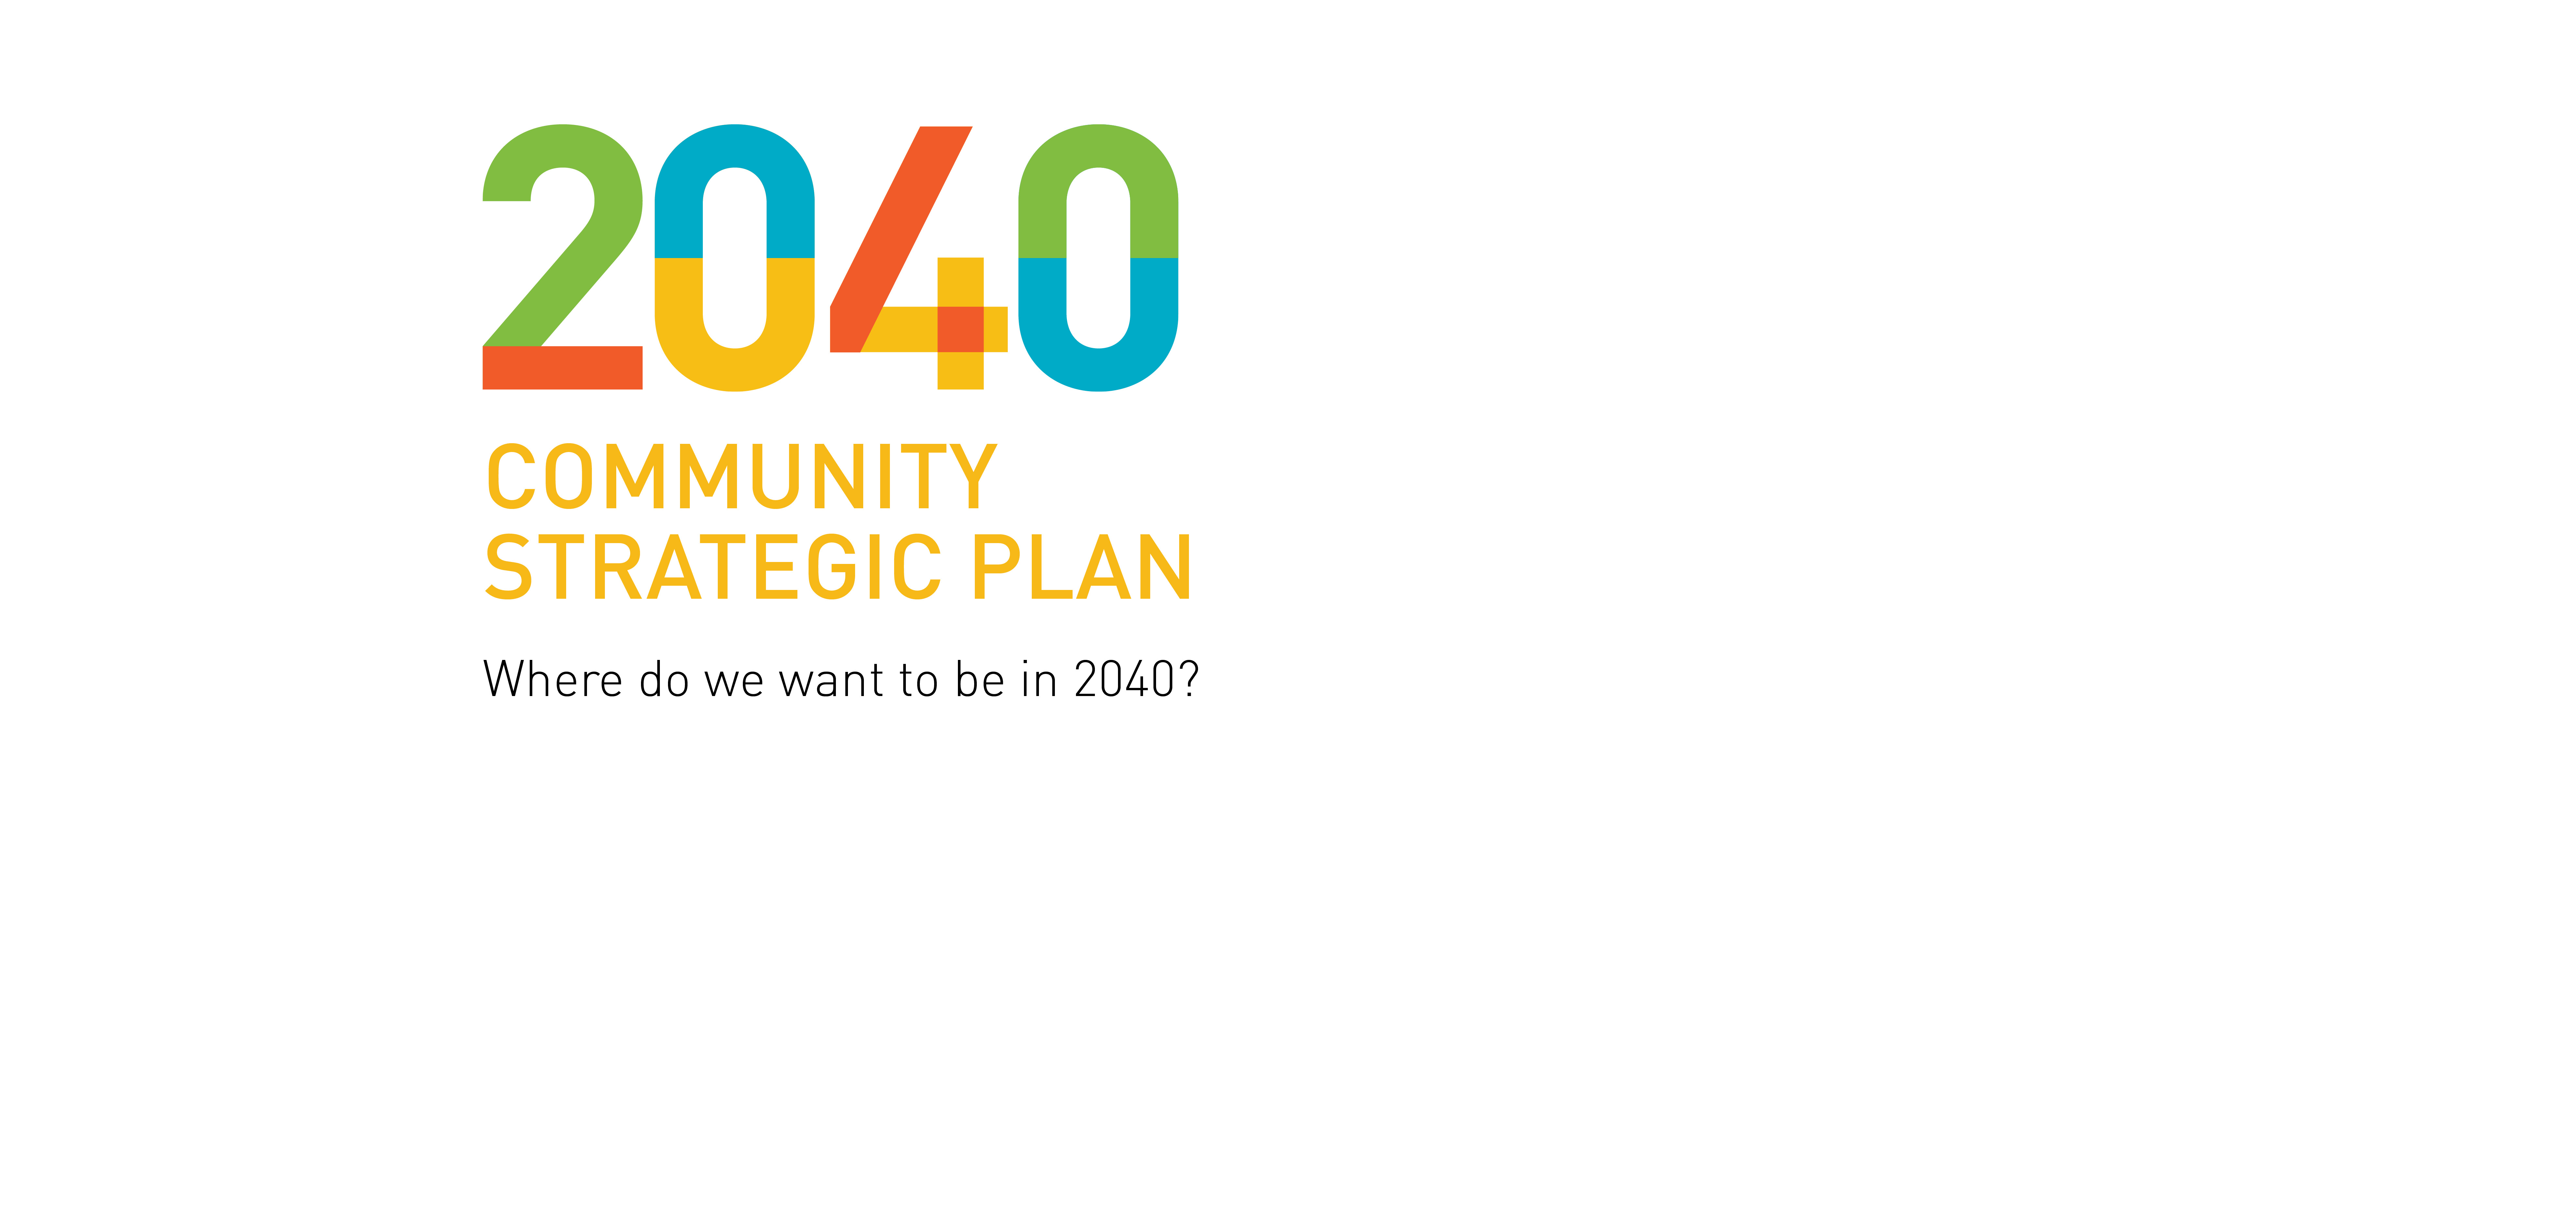 The 2040 Community Strategic Plan outlines aspirations and visions as overarching strategic outcomes to be achieved by 2040.